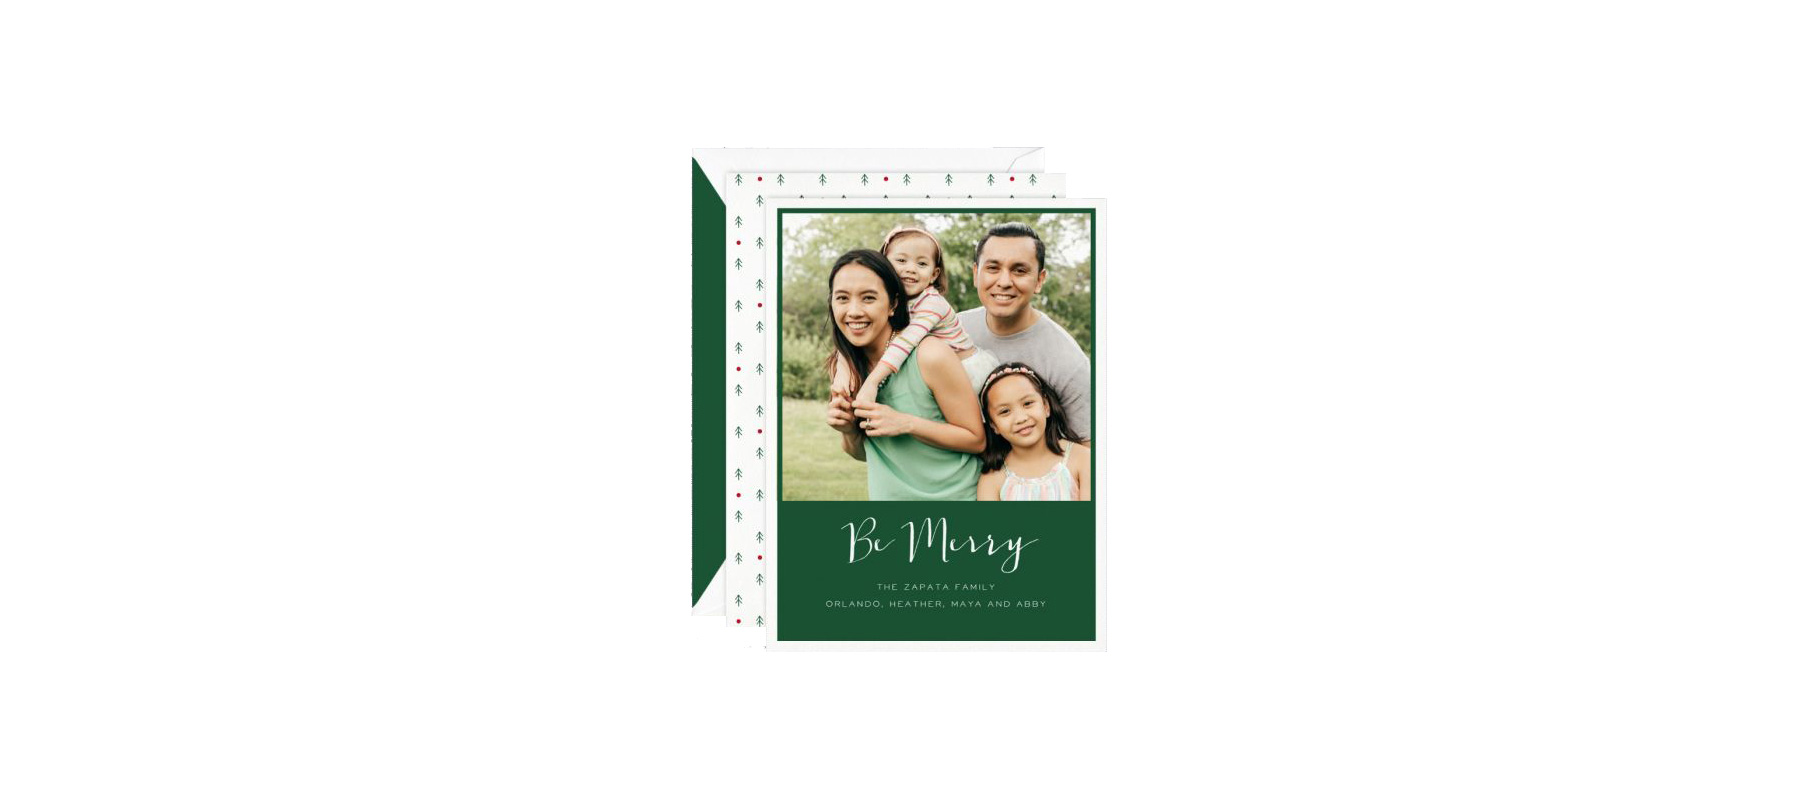 Be Merry Holiday Digital Photo Card